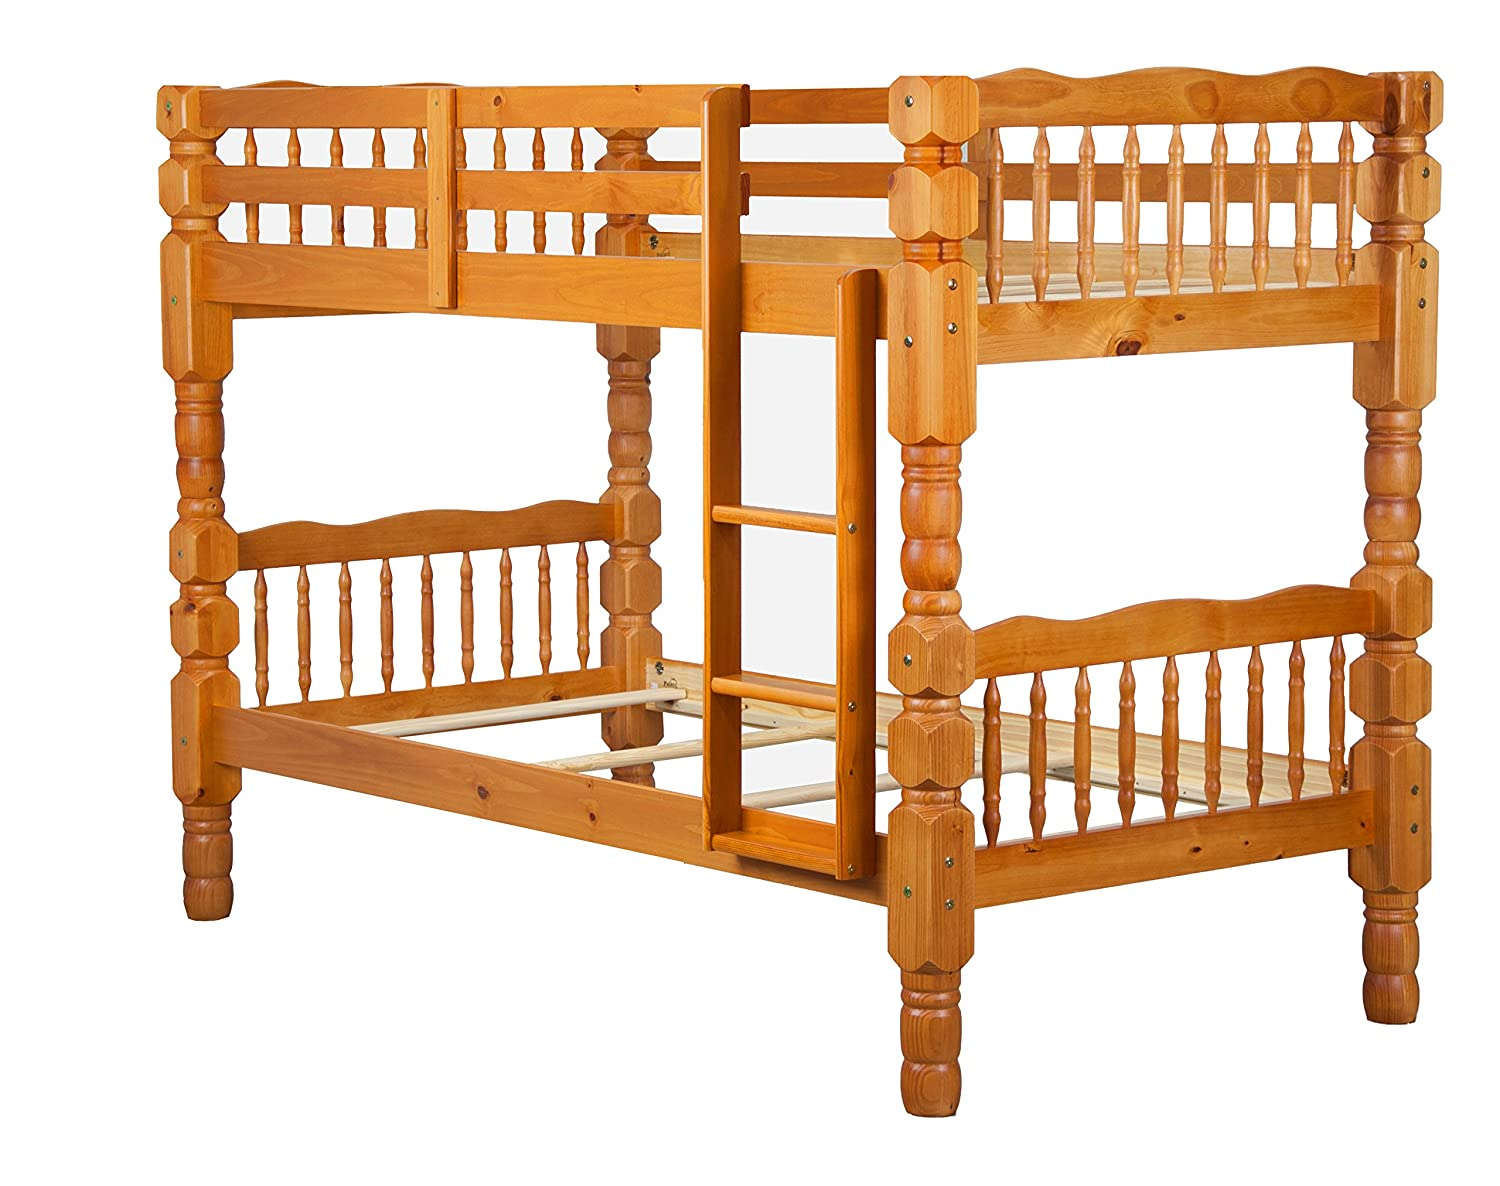 100% Solid Wood Dakota Twin Over Twin Bunk Bed by Palace Imports - Honey Pine - 4 Posts - 8 Slats Included. Optional